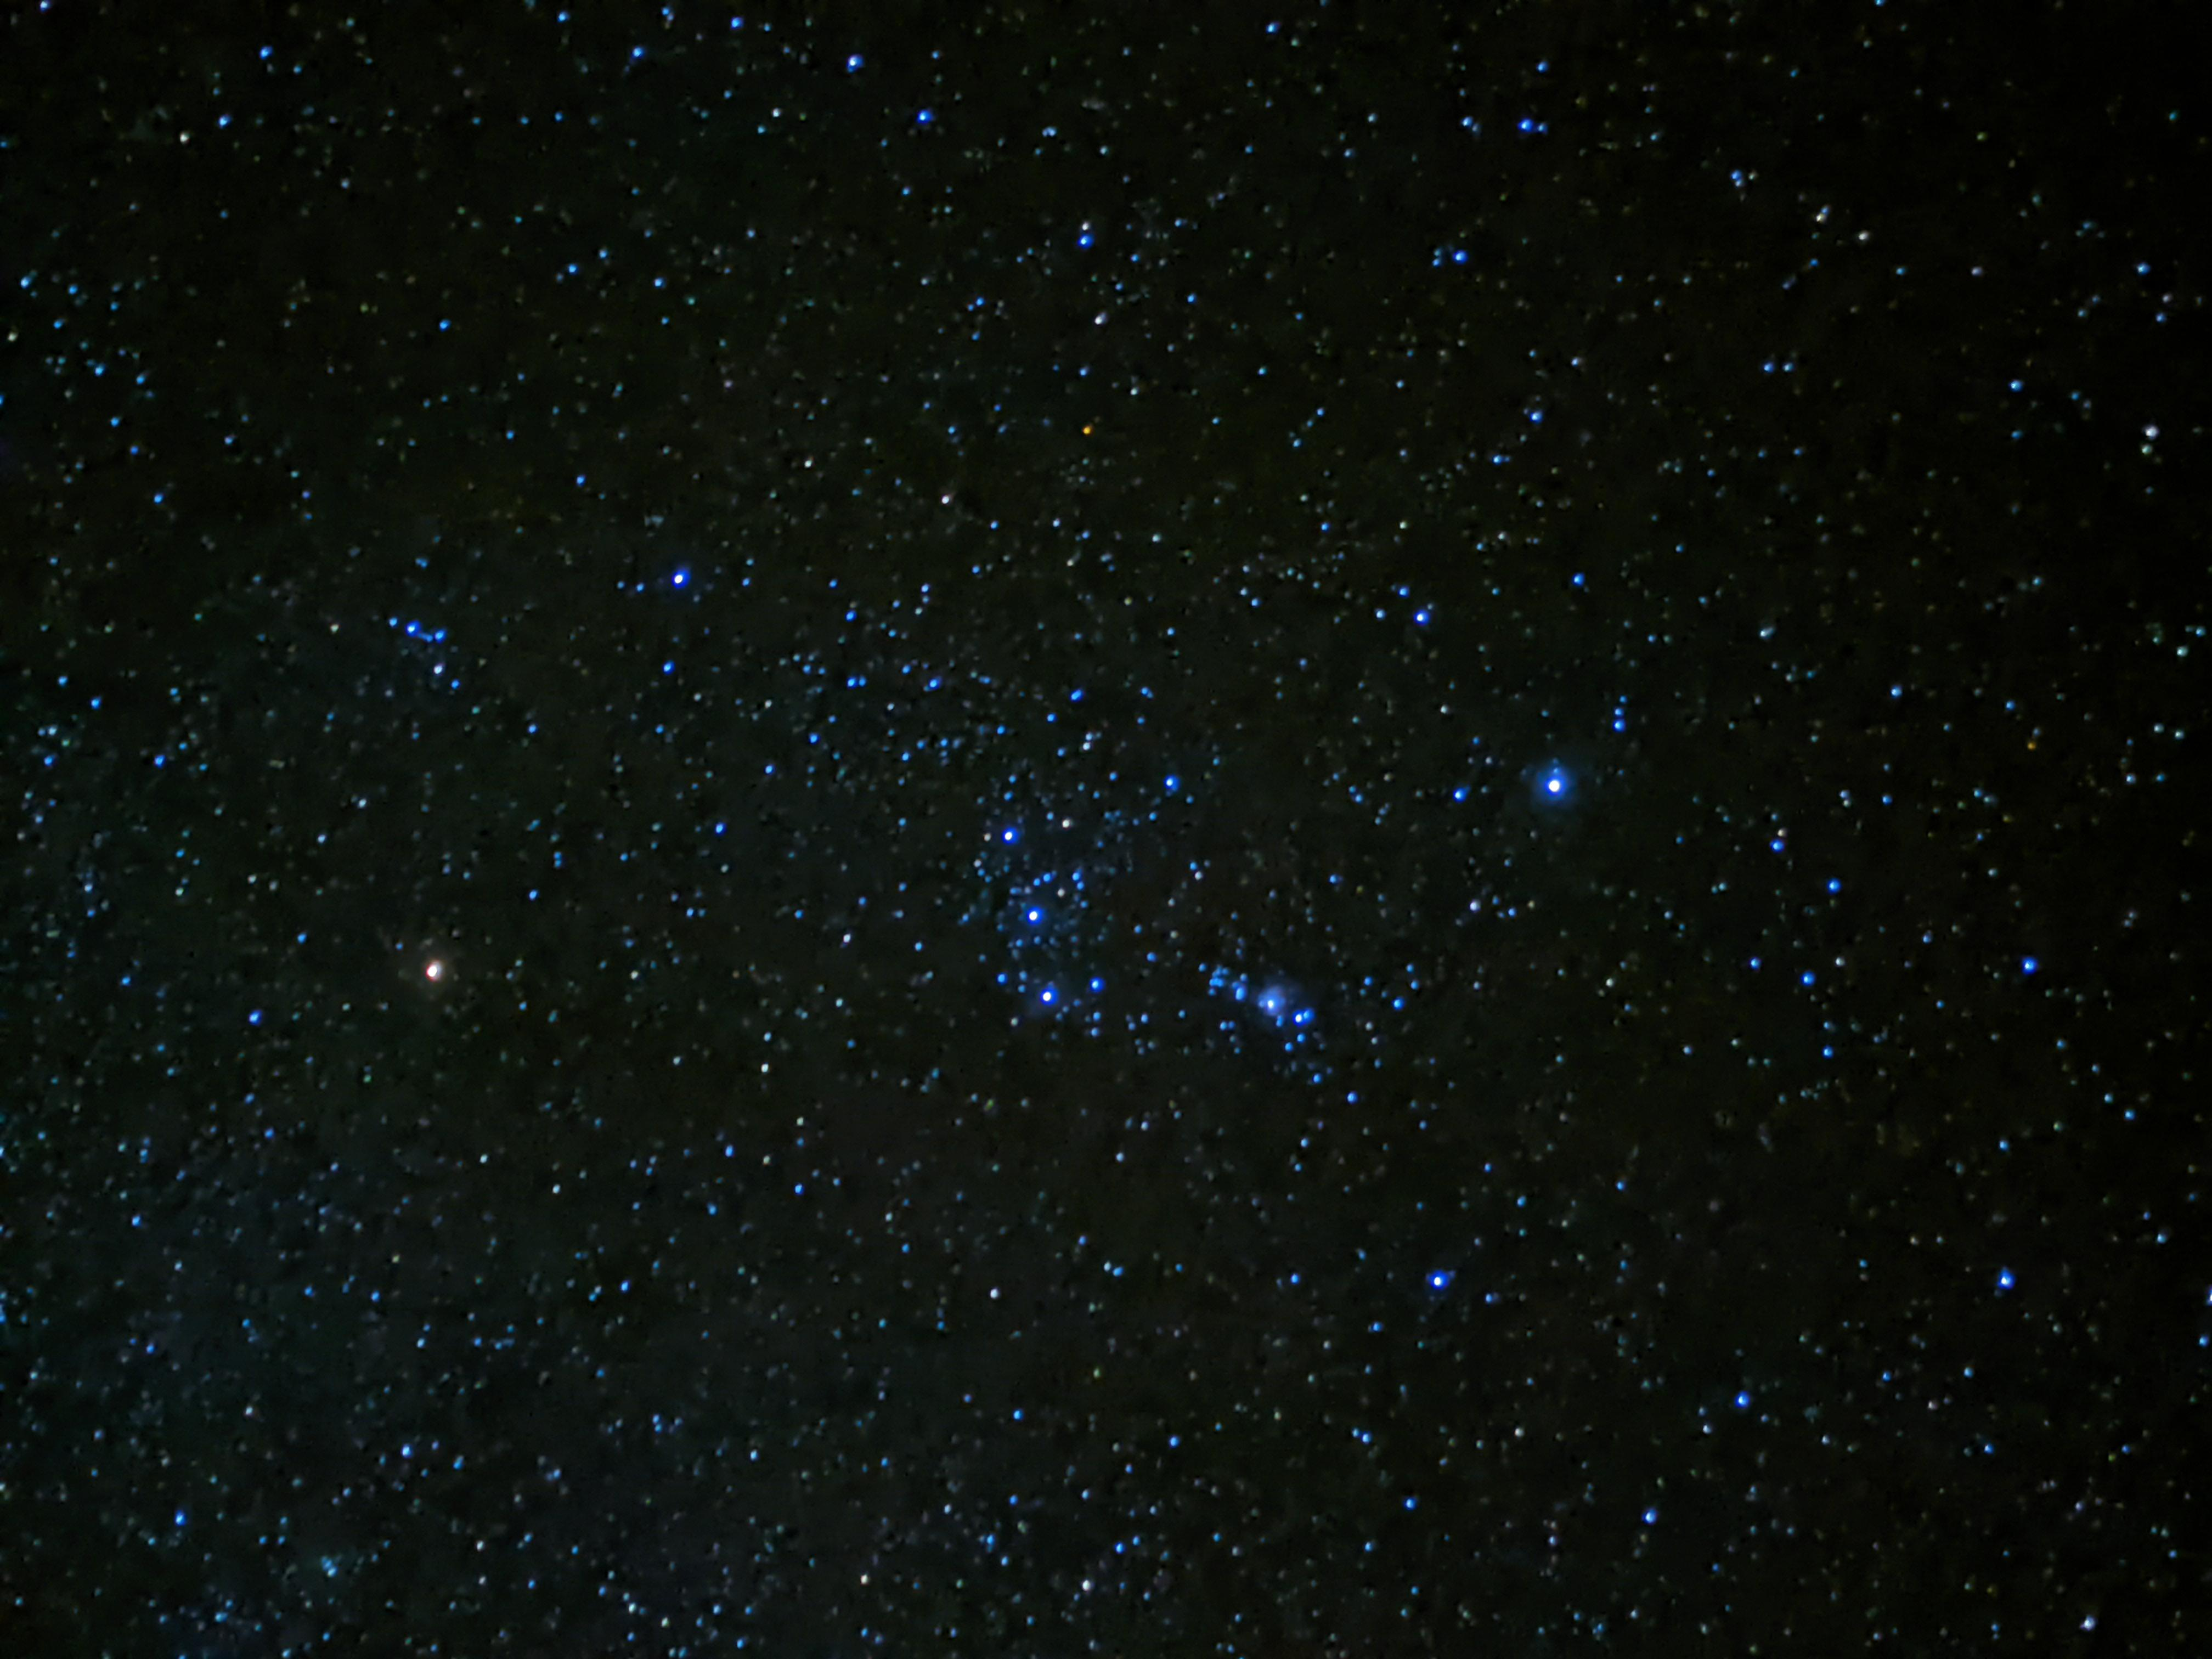 Untracked Orion with Pixel 5 astrophotography mode from near equator